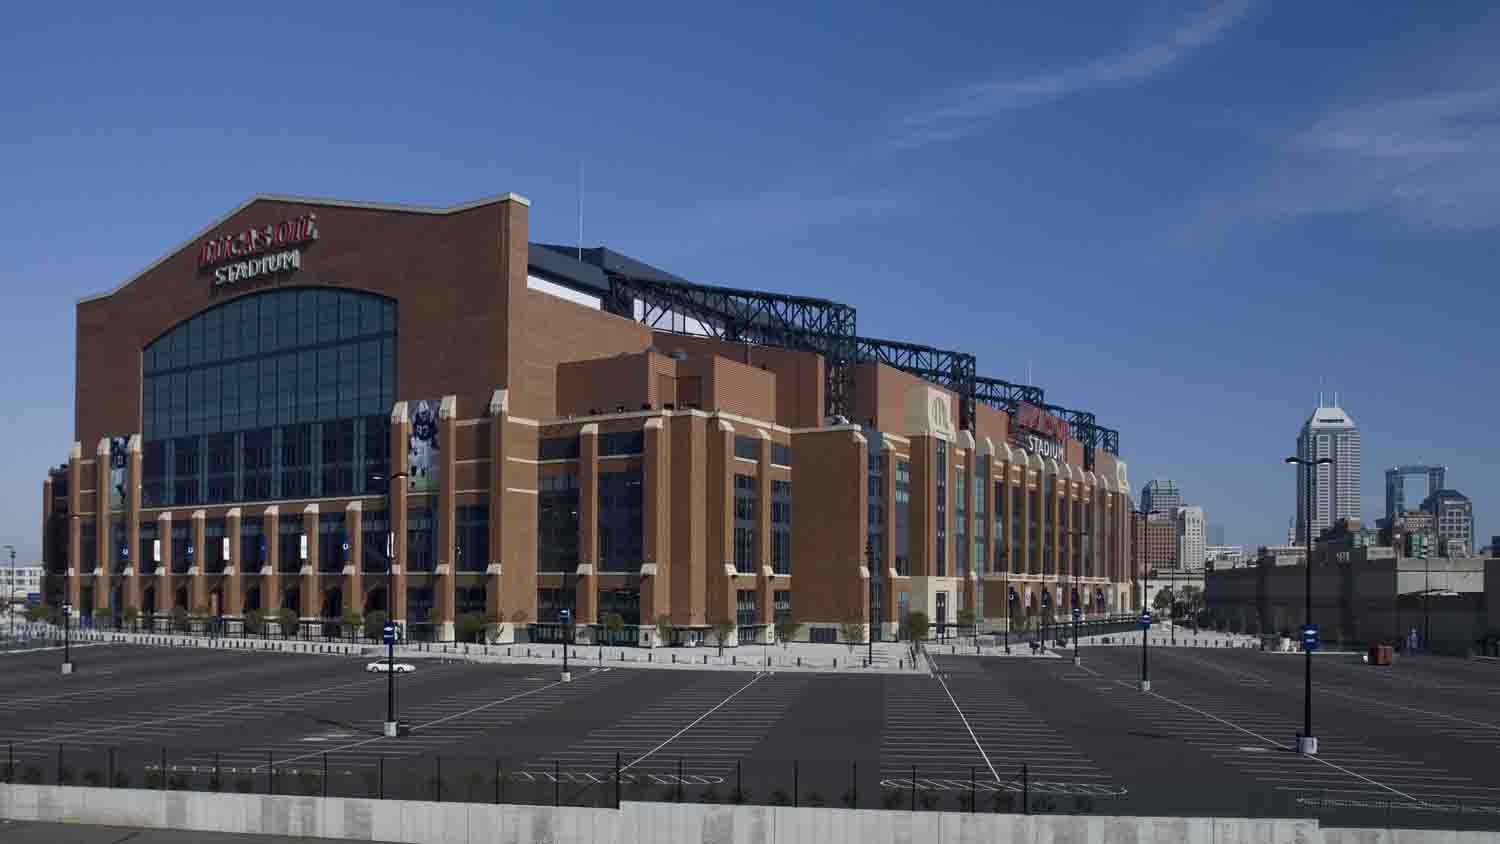 Lucas oil stadium 8